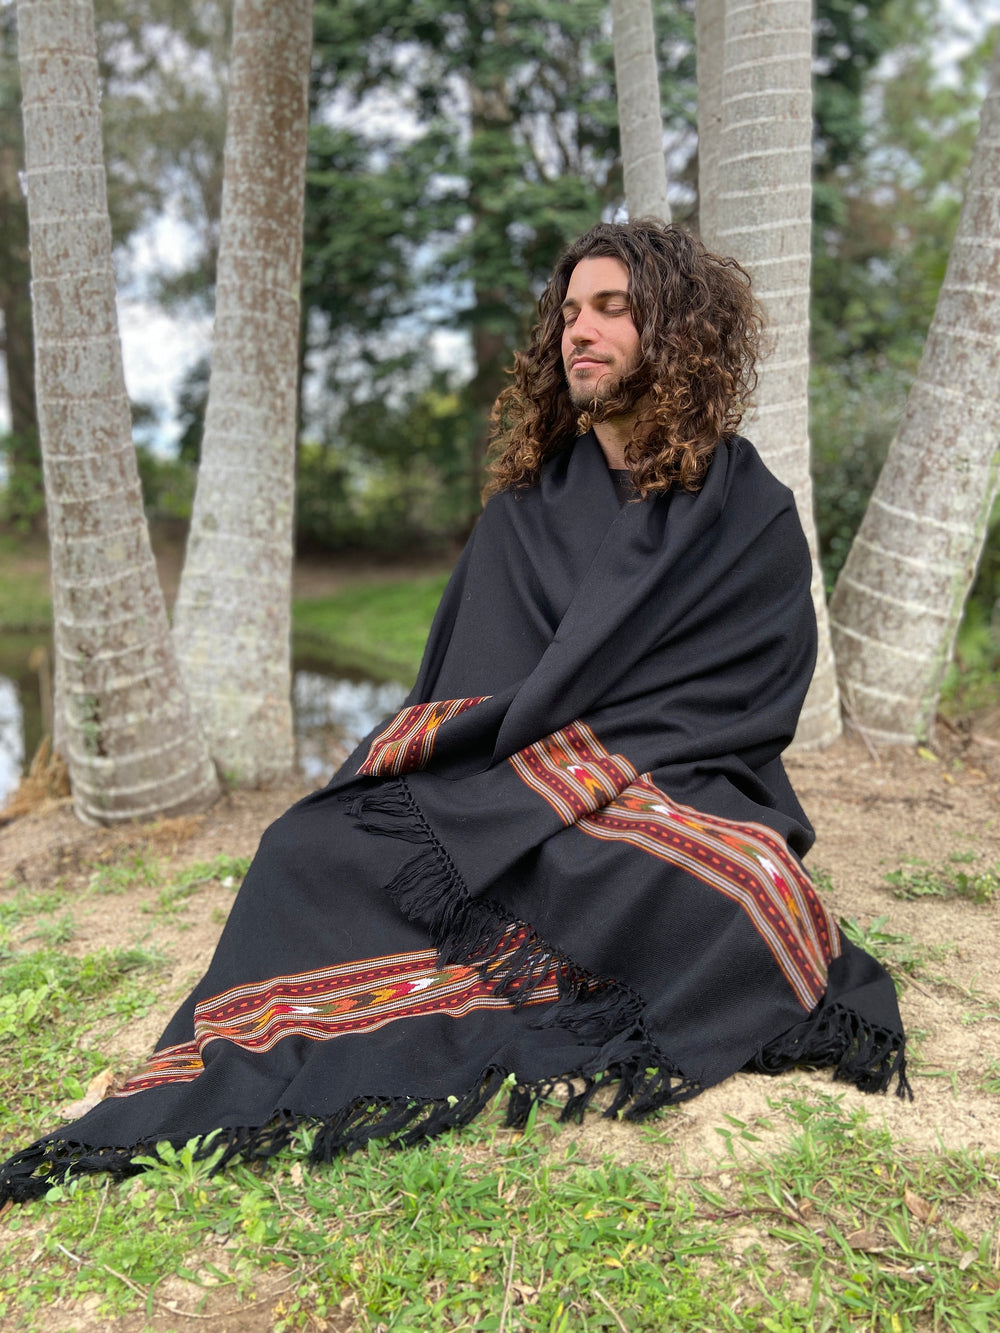 BHAVA Shawl Black Handwoven Wool Meditation Prayer Scarf Blanket Premium Pure Cashmere Tibetan Winter Tribal Zen Embroidery Boho AJJAYA